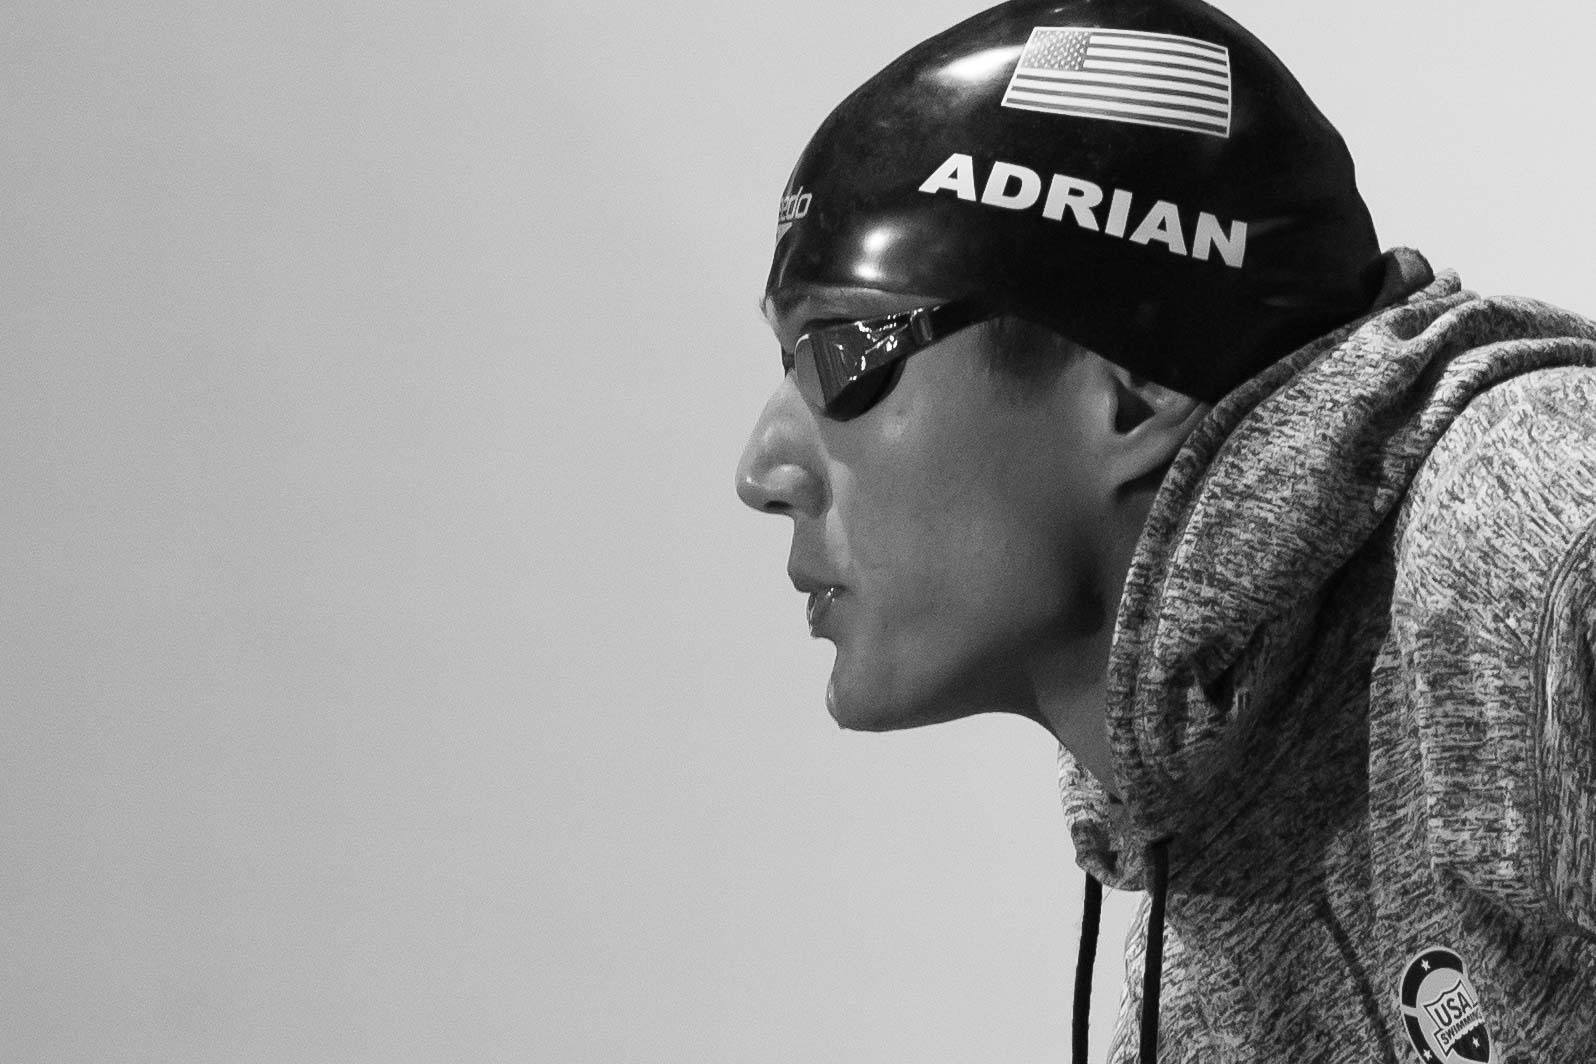 Adrian, Coughlin Among USA Swimming Athlete Director Nominees